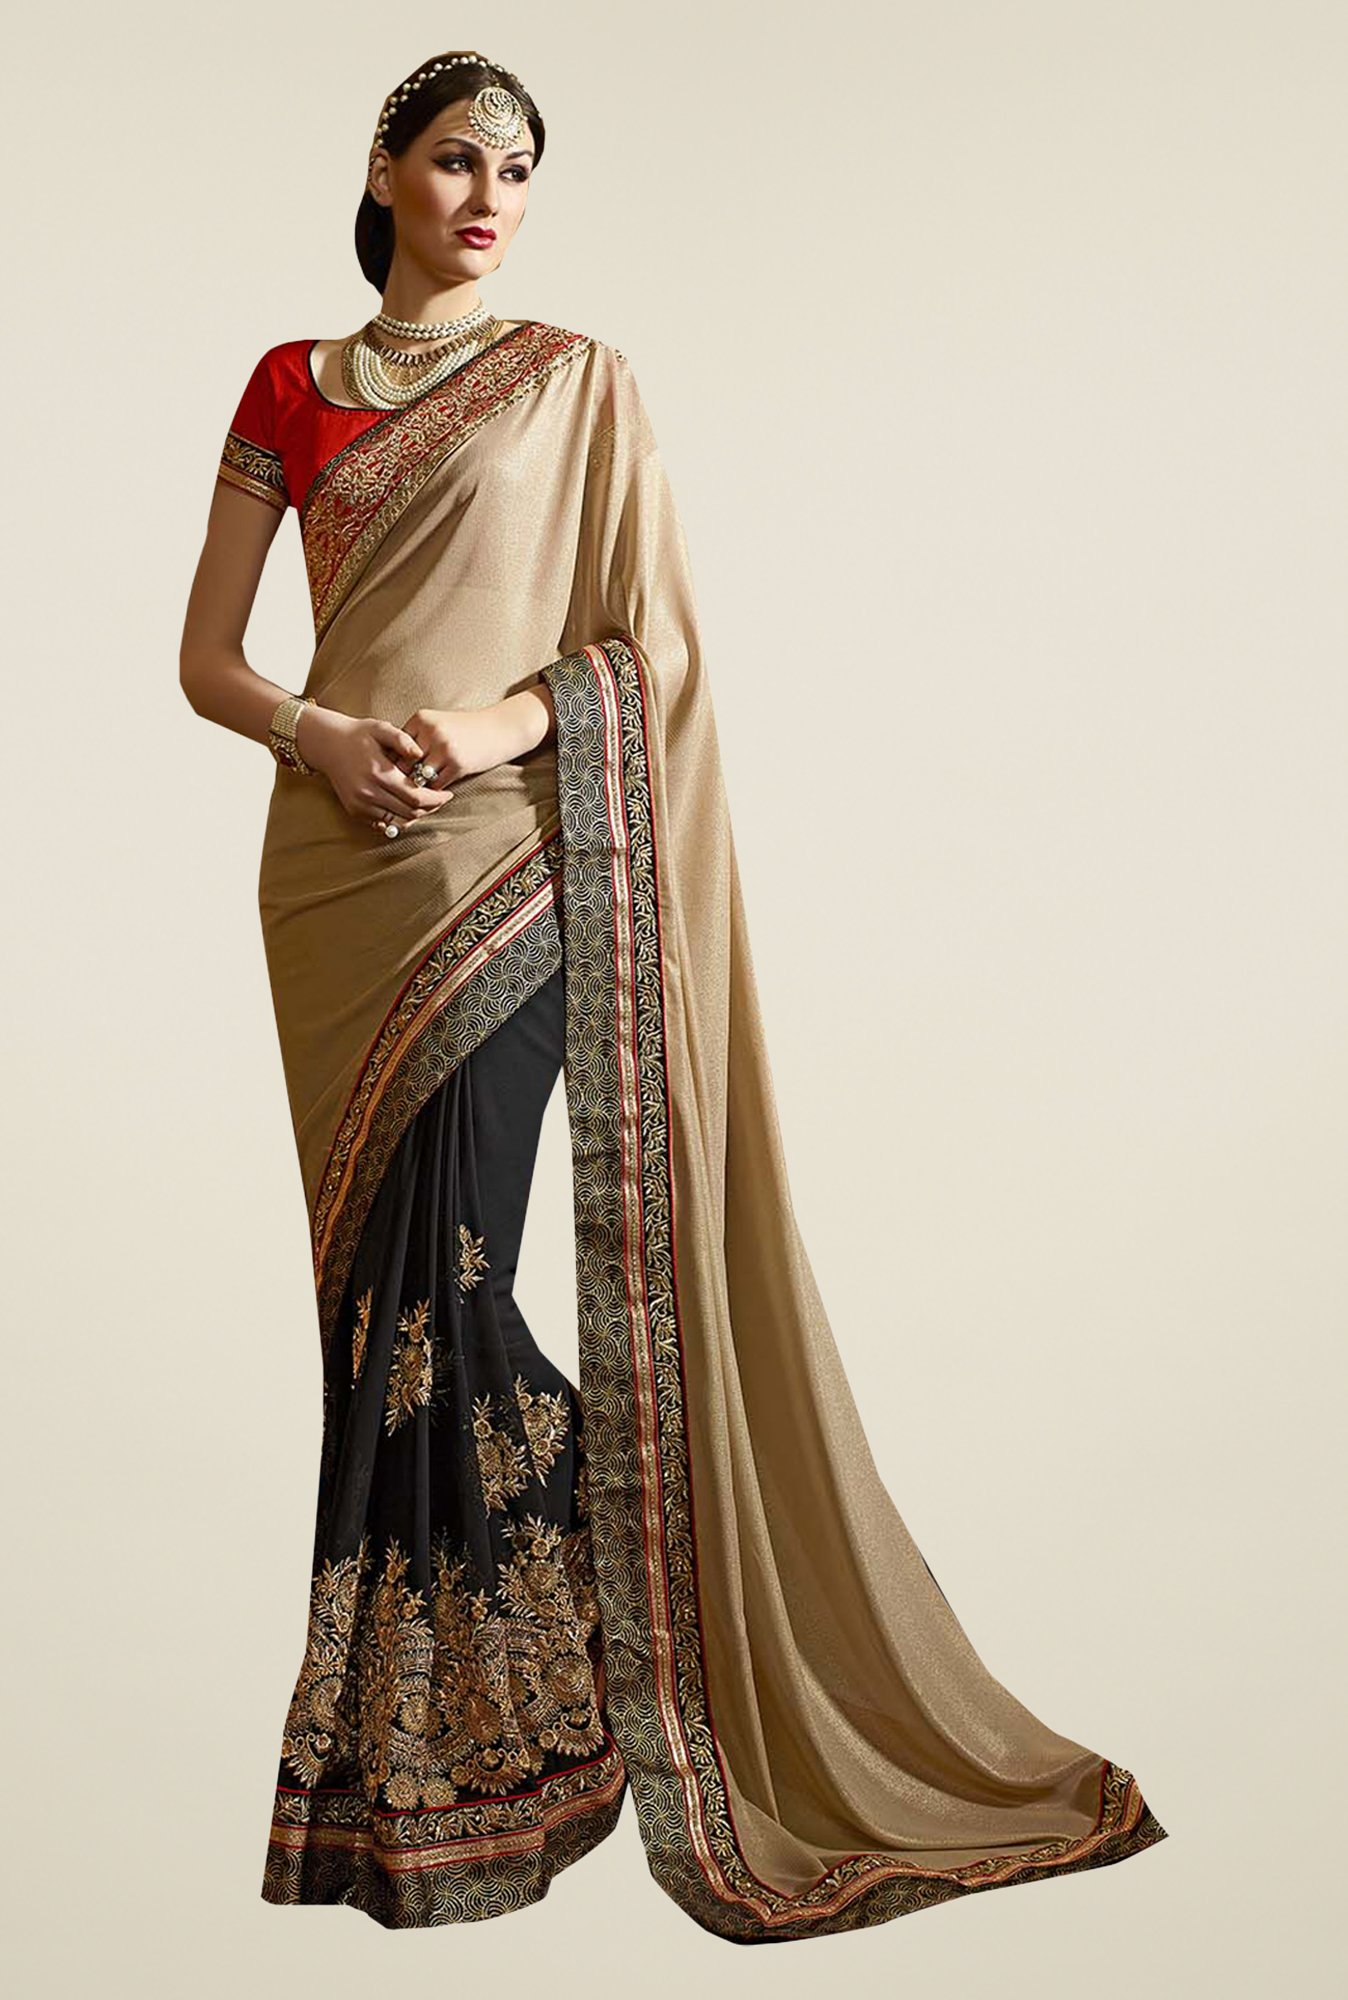 Ishin Black & Beige Faux Georgette & Satin Saree